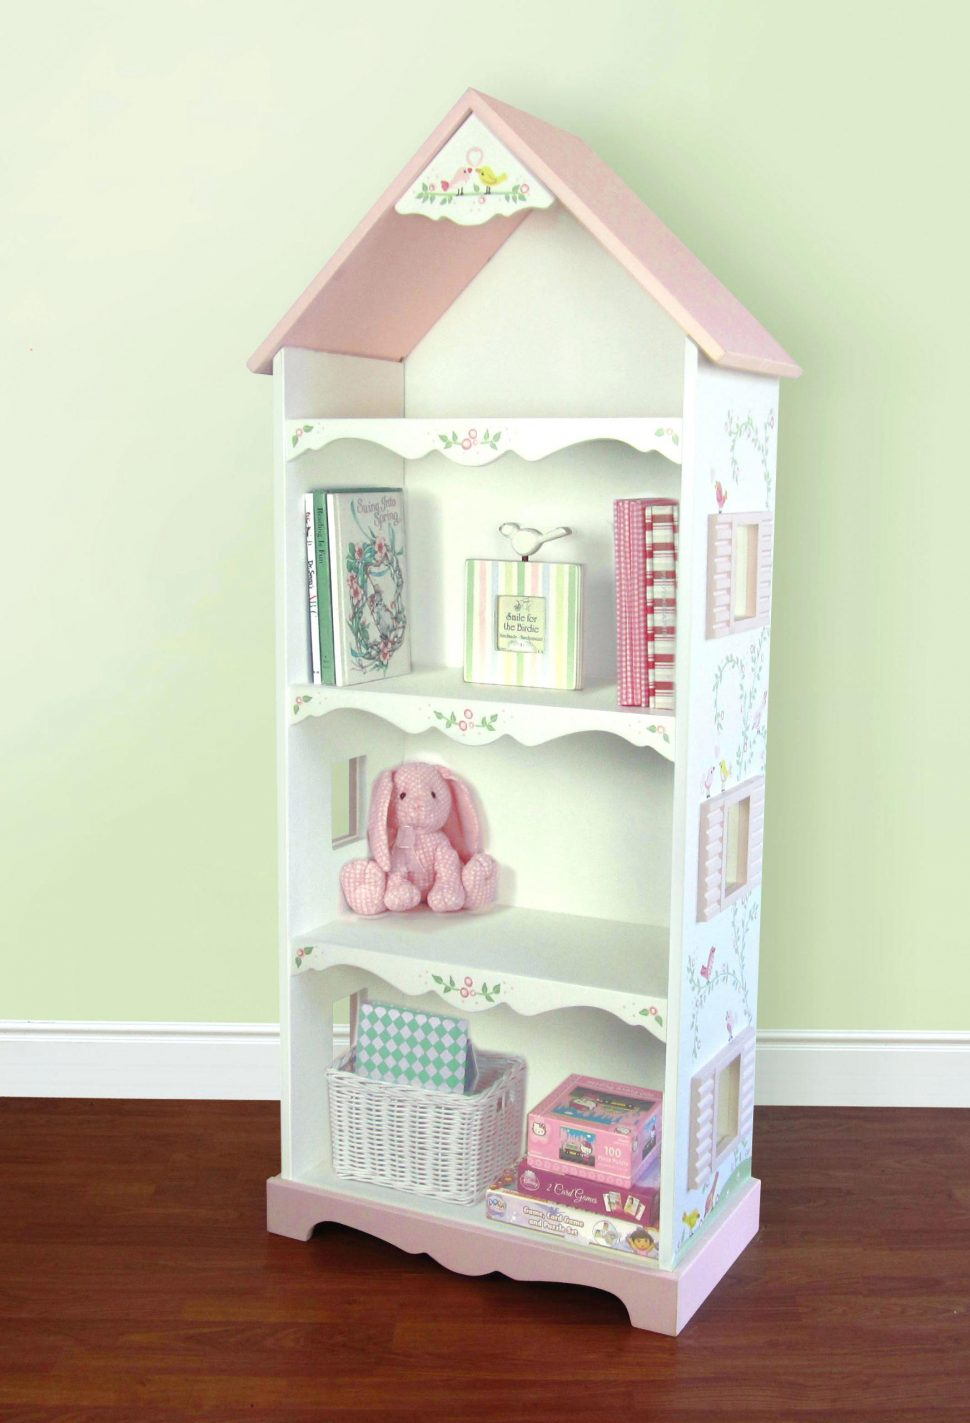 dollhouse bookcase ideas livingroom:home design pottery barn kids dollhouse bookcase new ideas white WOZHKCU